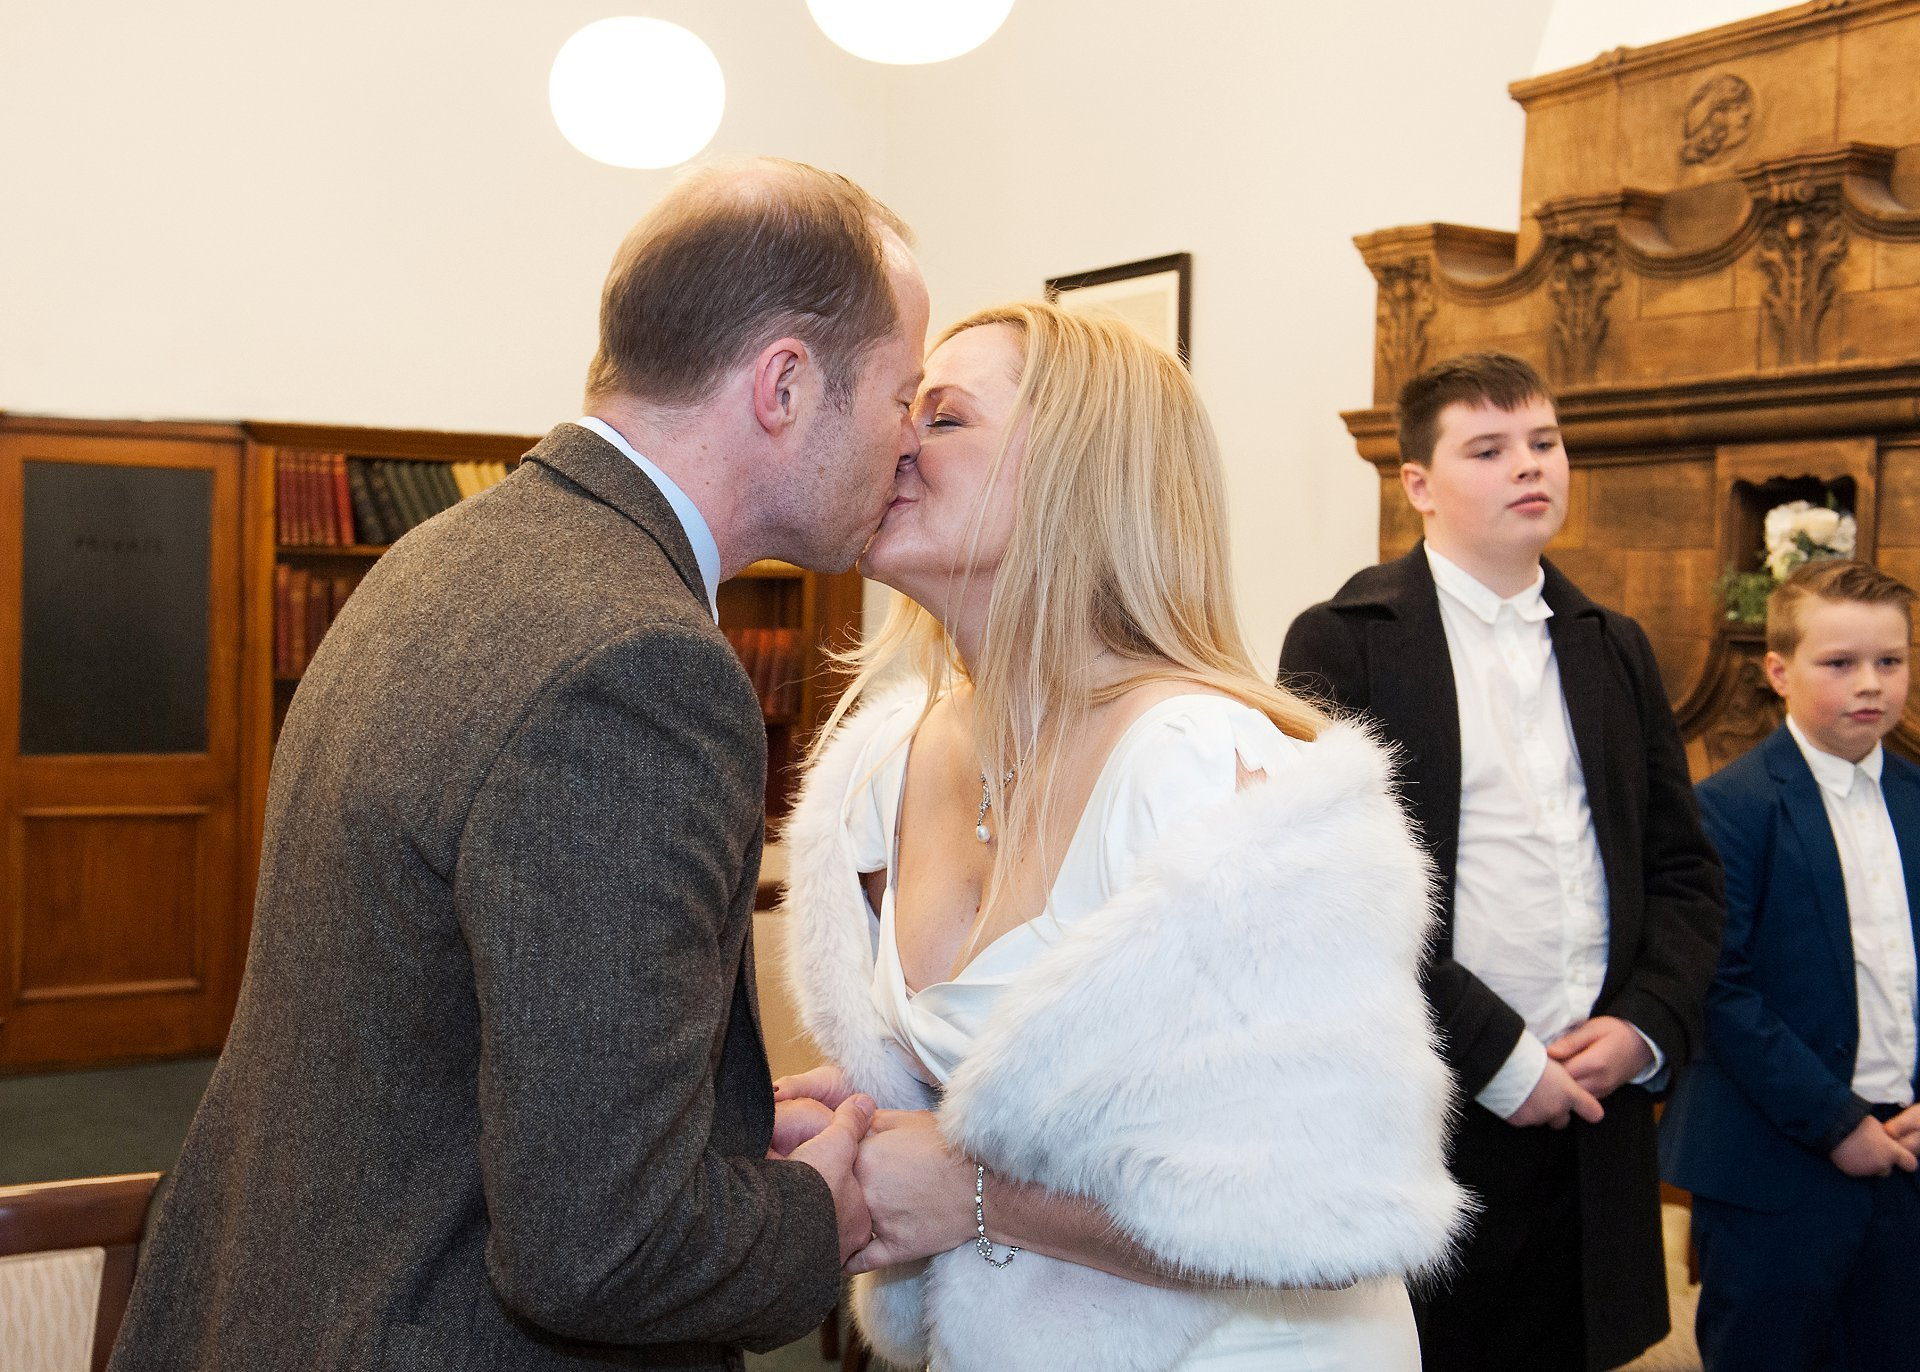 Mayfair Library wedding photographer - hourly coverage for small register office weddings at Westminster Register Office. Here a bride and groom kiss during their Marylebone Room civil wedding ceremony at Mayfair Library